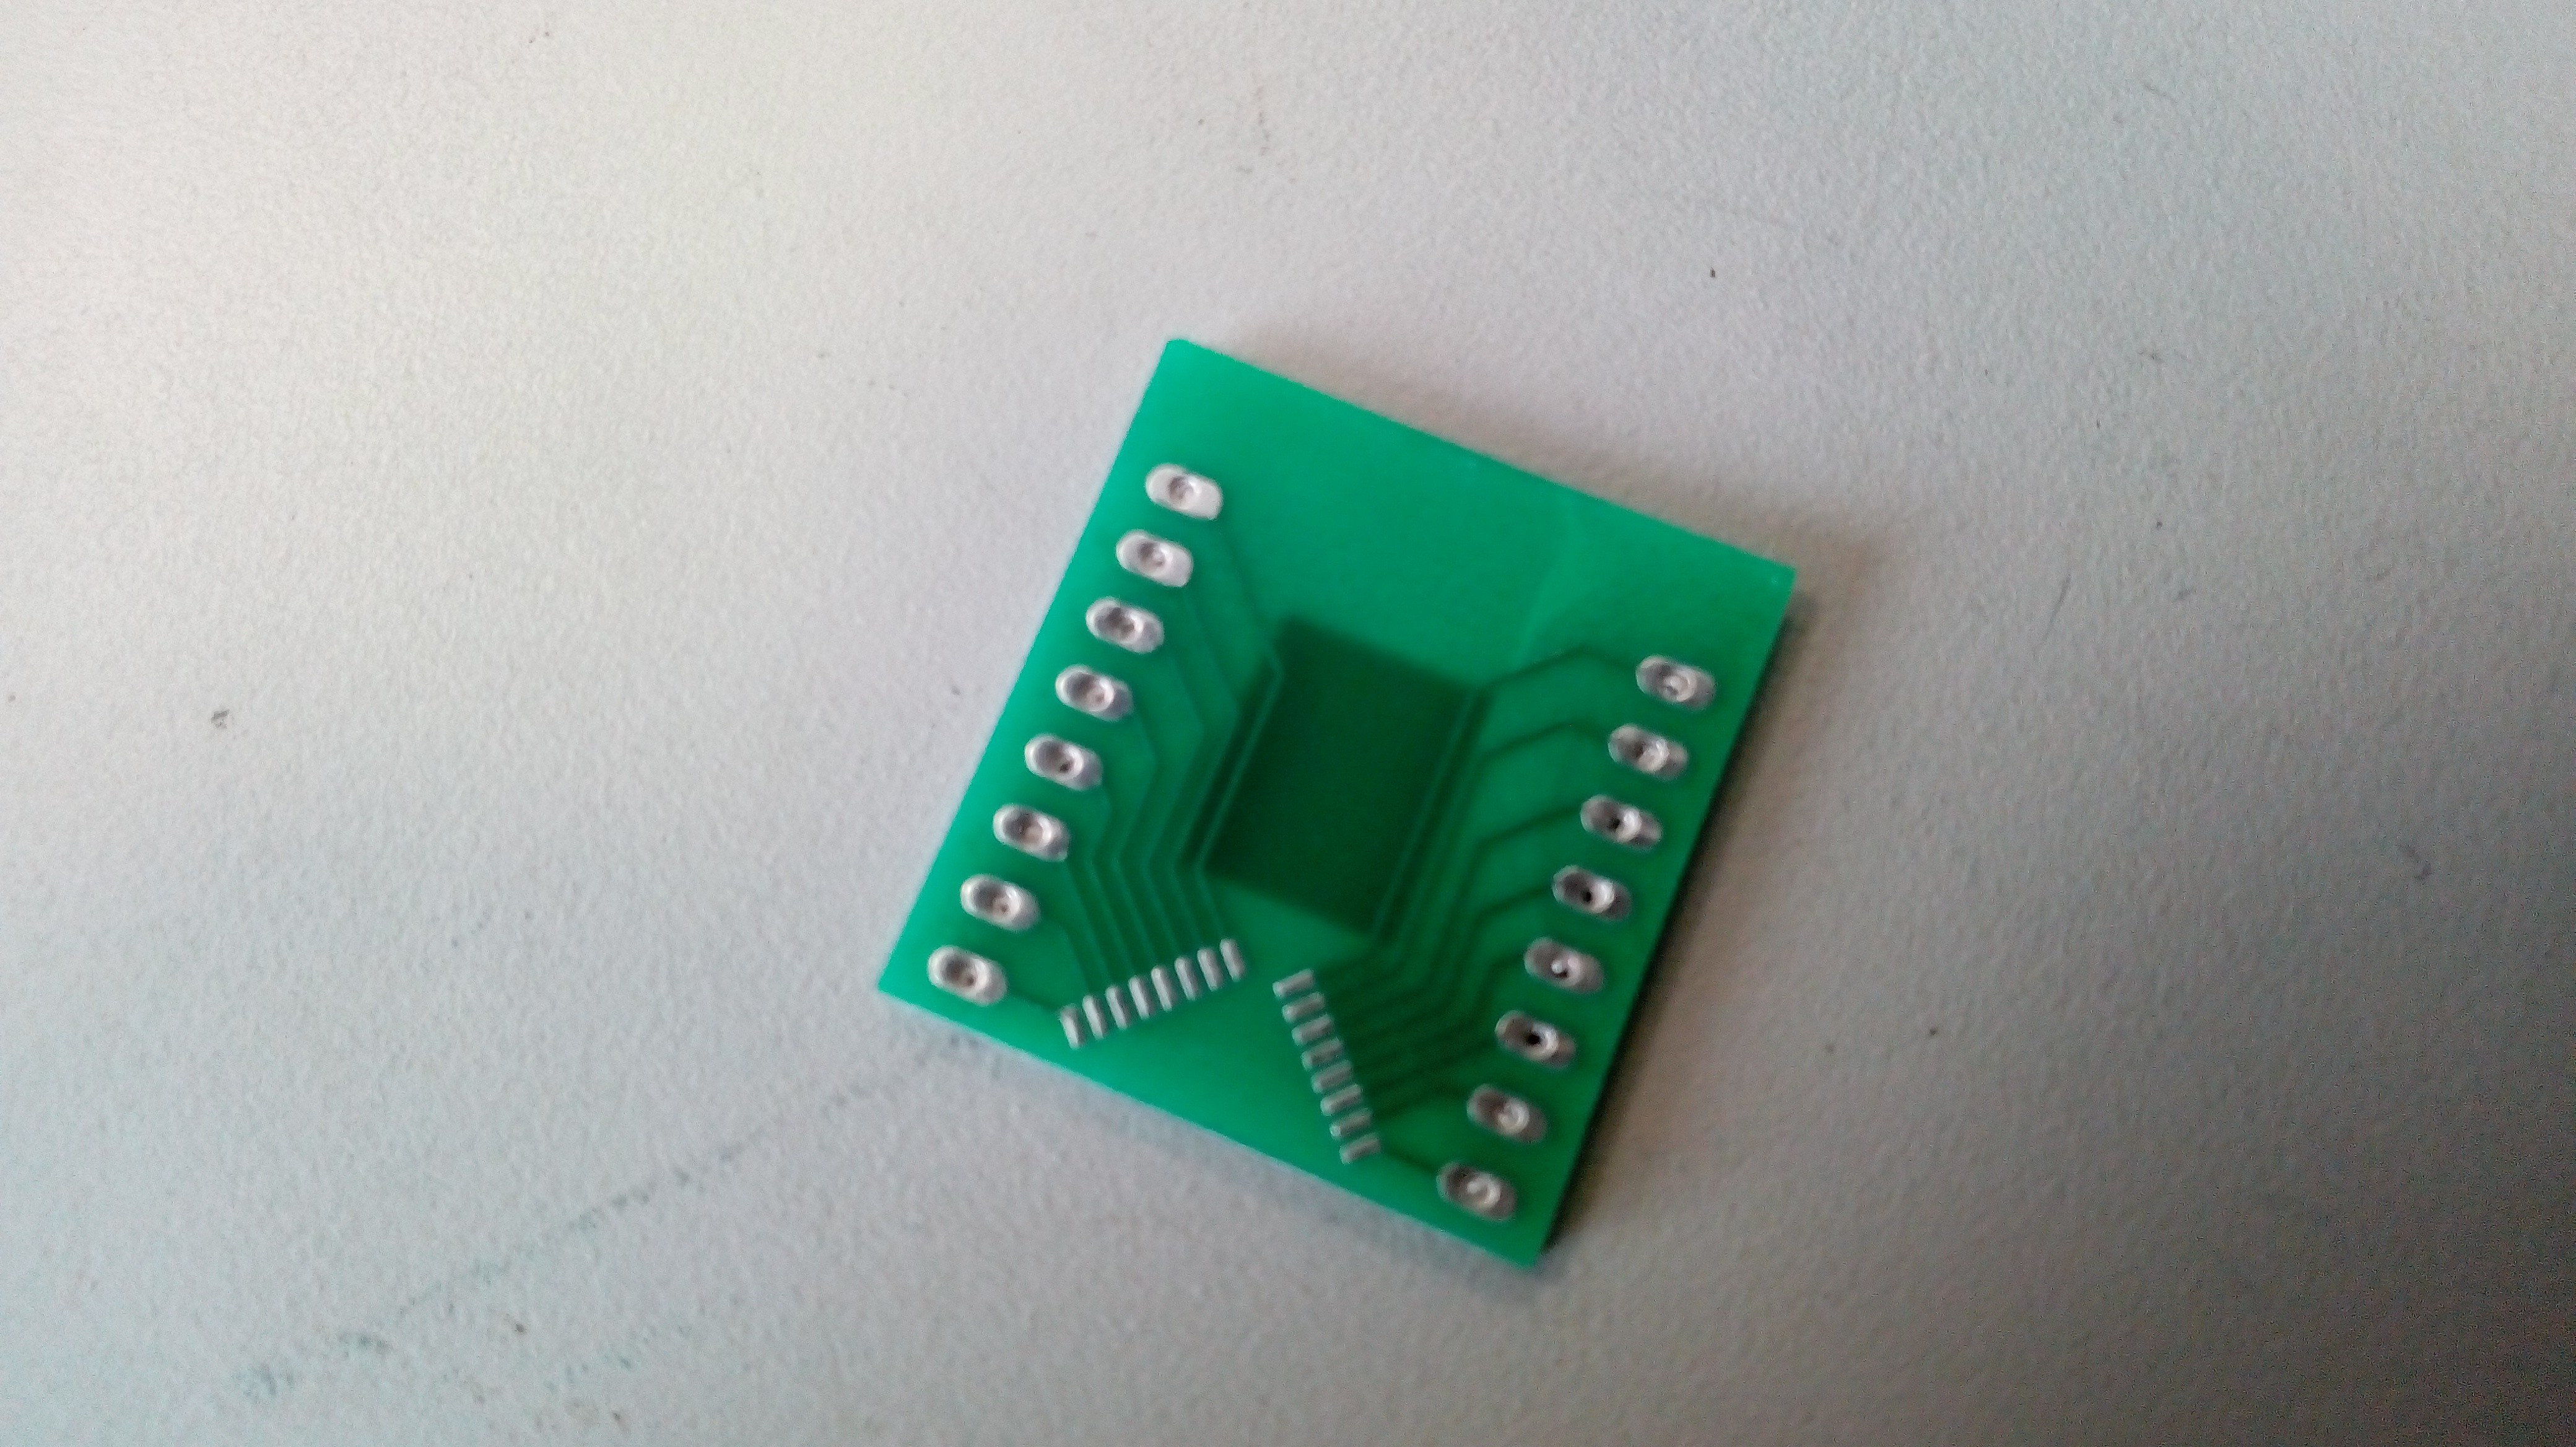 Larger Than One Square Inch Pcb Breakout Diy How To Create Your Printed Circuit Board O Hackadayio I Had Only Access Cutter Able Cut 7mm Deep So Island Of Material Untouched In The Middle